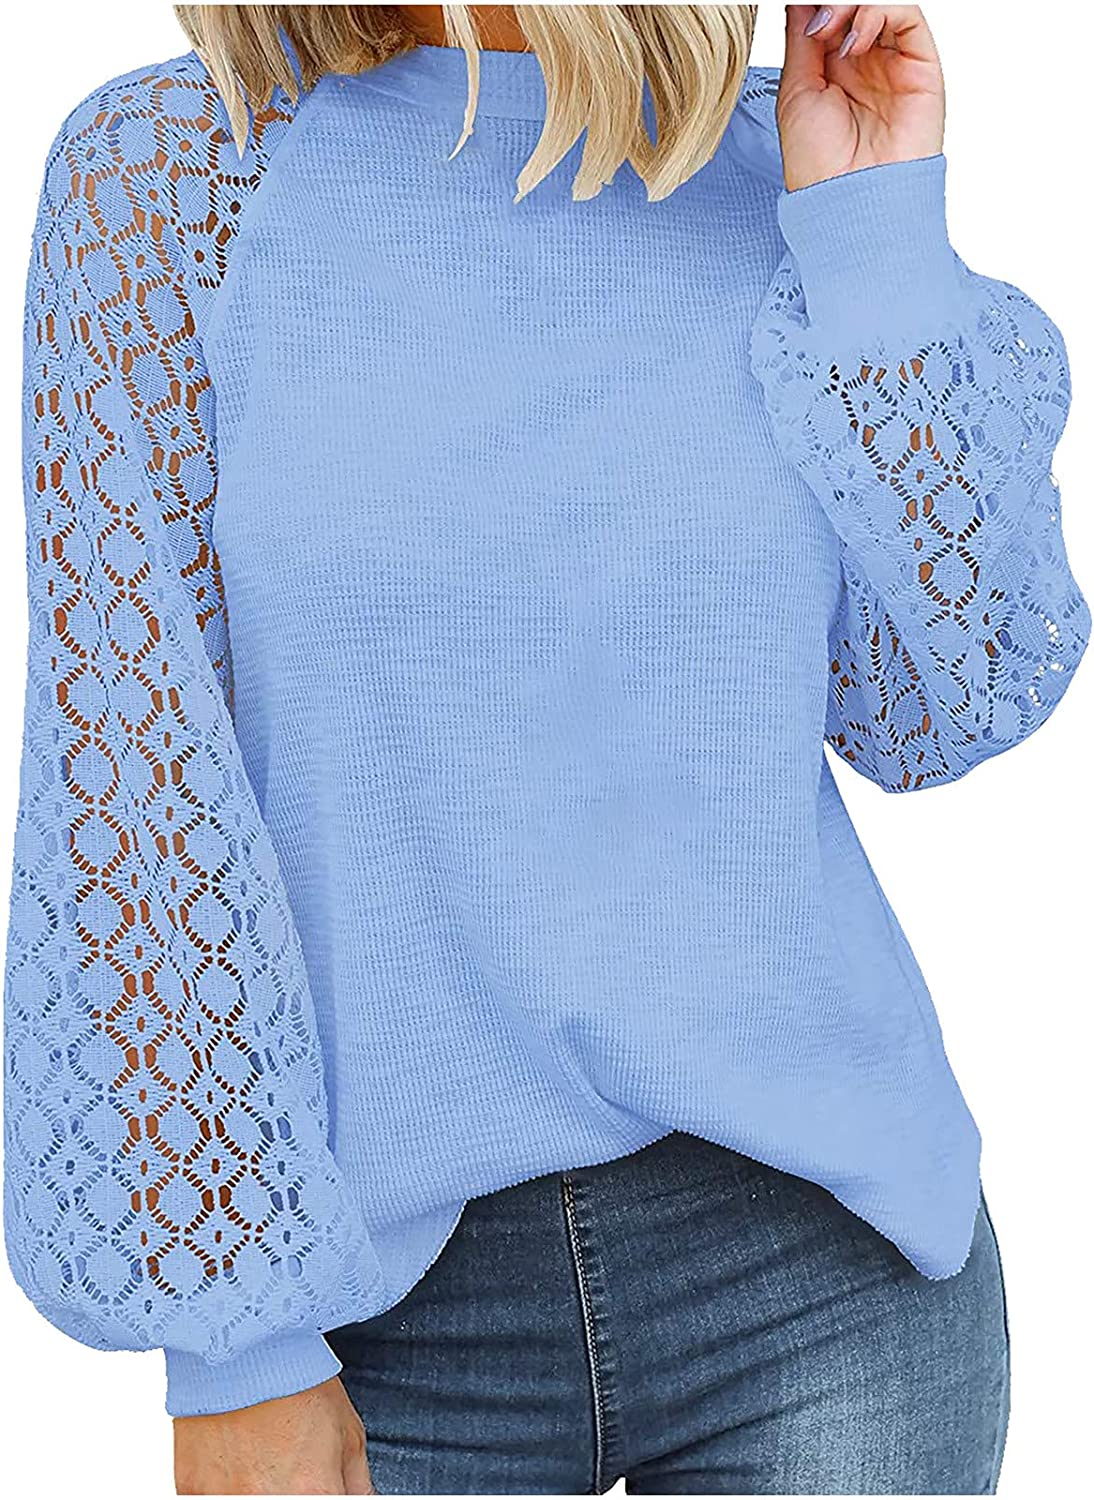 Women's O-Neck Long-Sleeved Lace Stitching Loose Tops Solid Sweatershirt